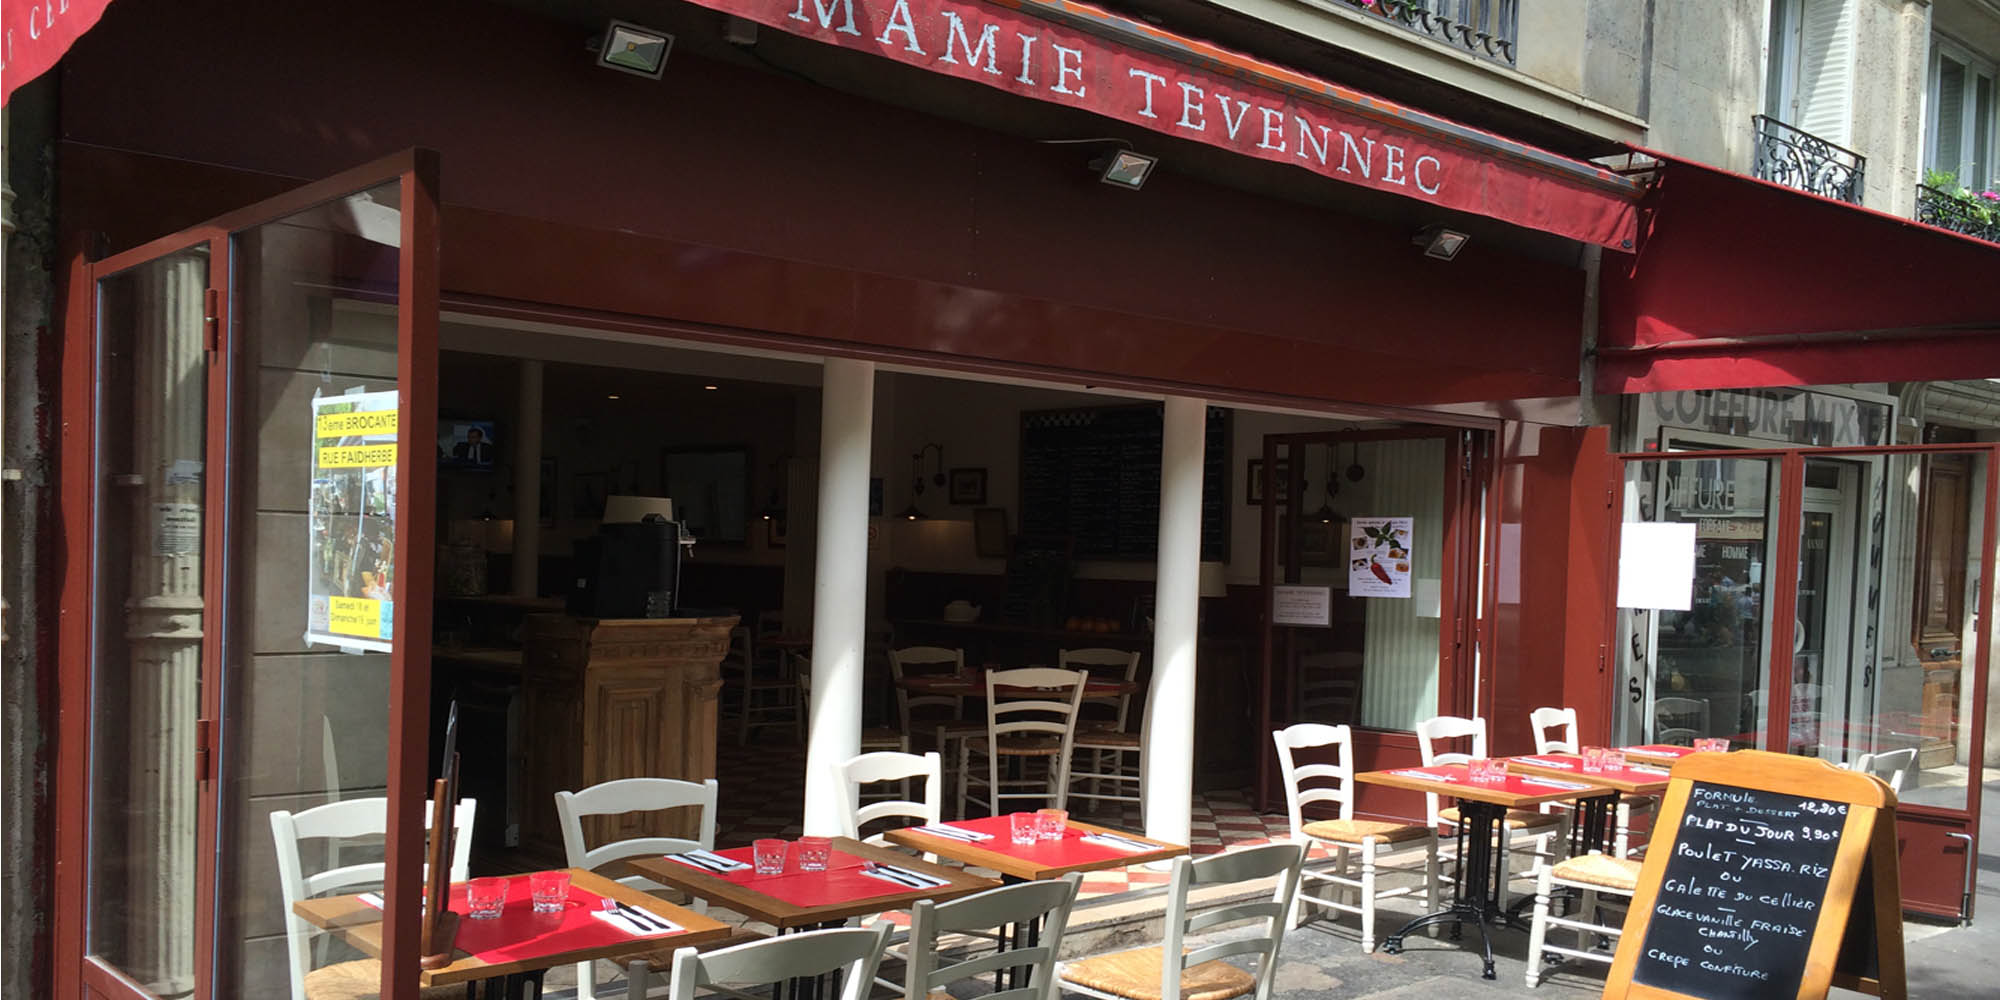 Brunch Mamie Tevennec (75011 Paris)